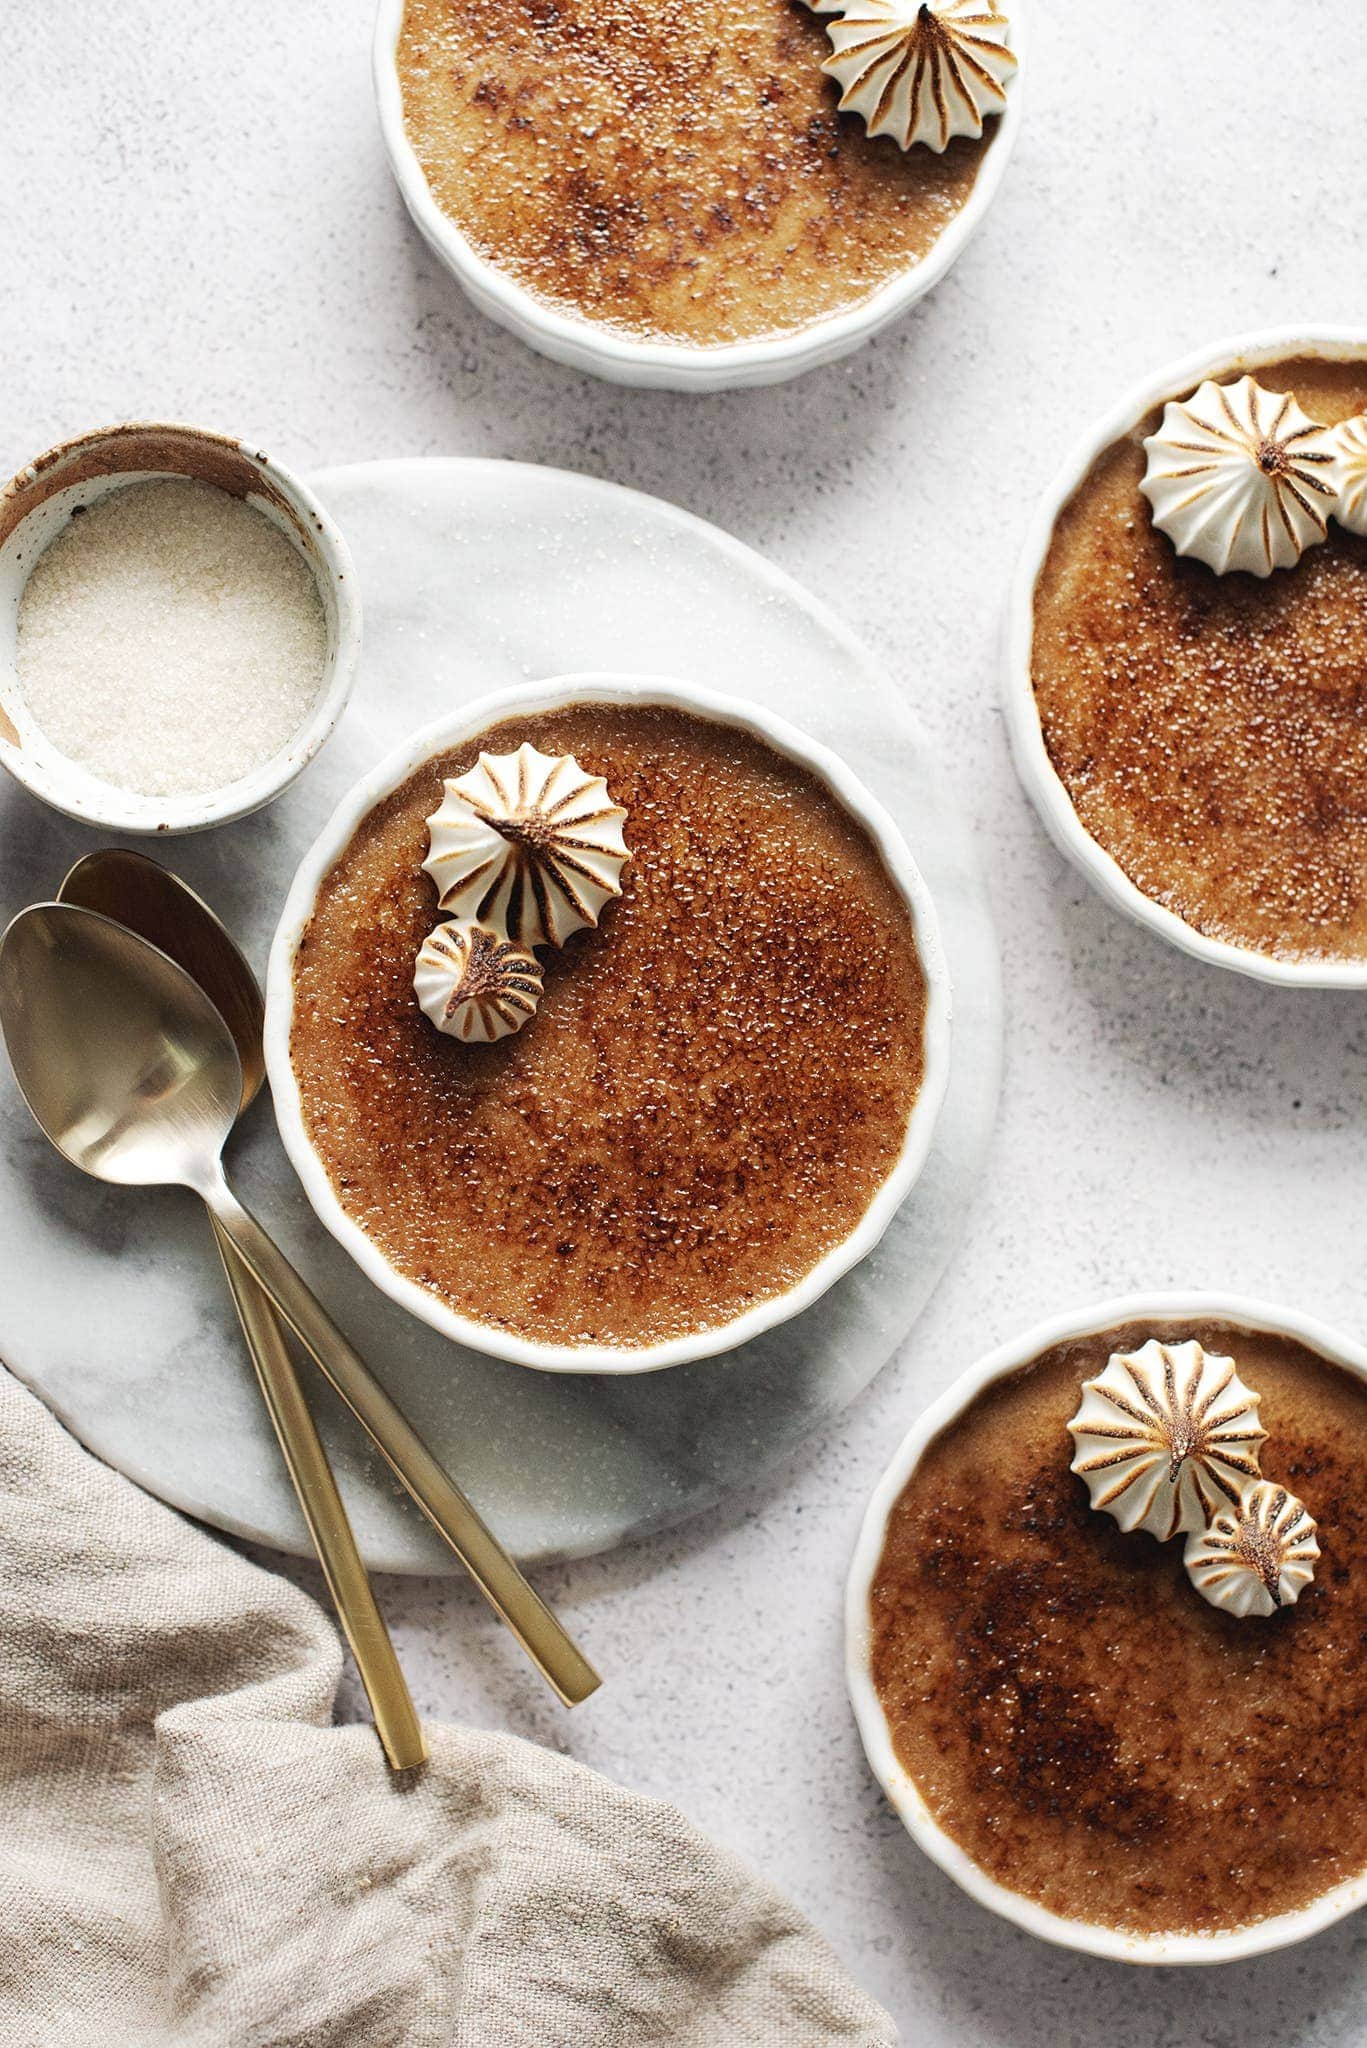 Pots of earl grey crème brûlée with torched surface